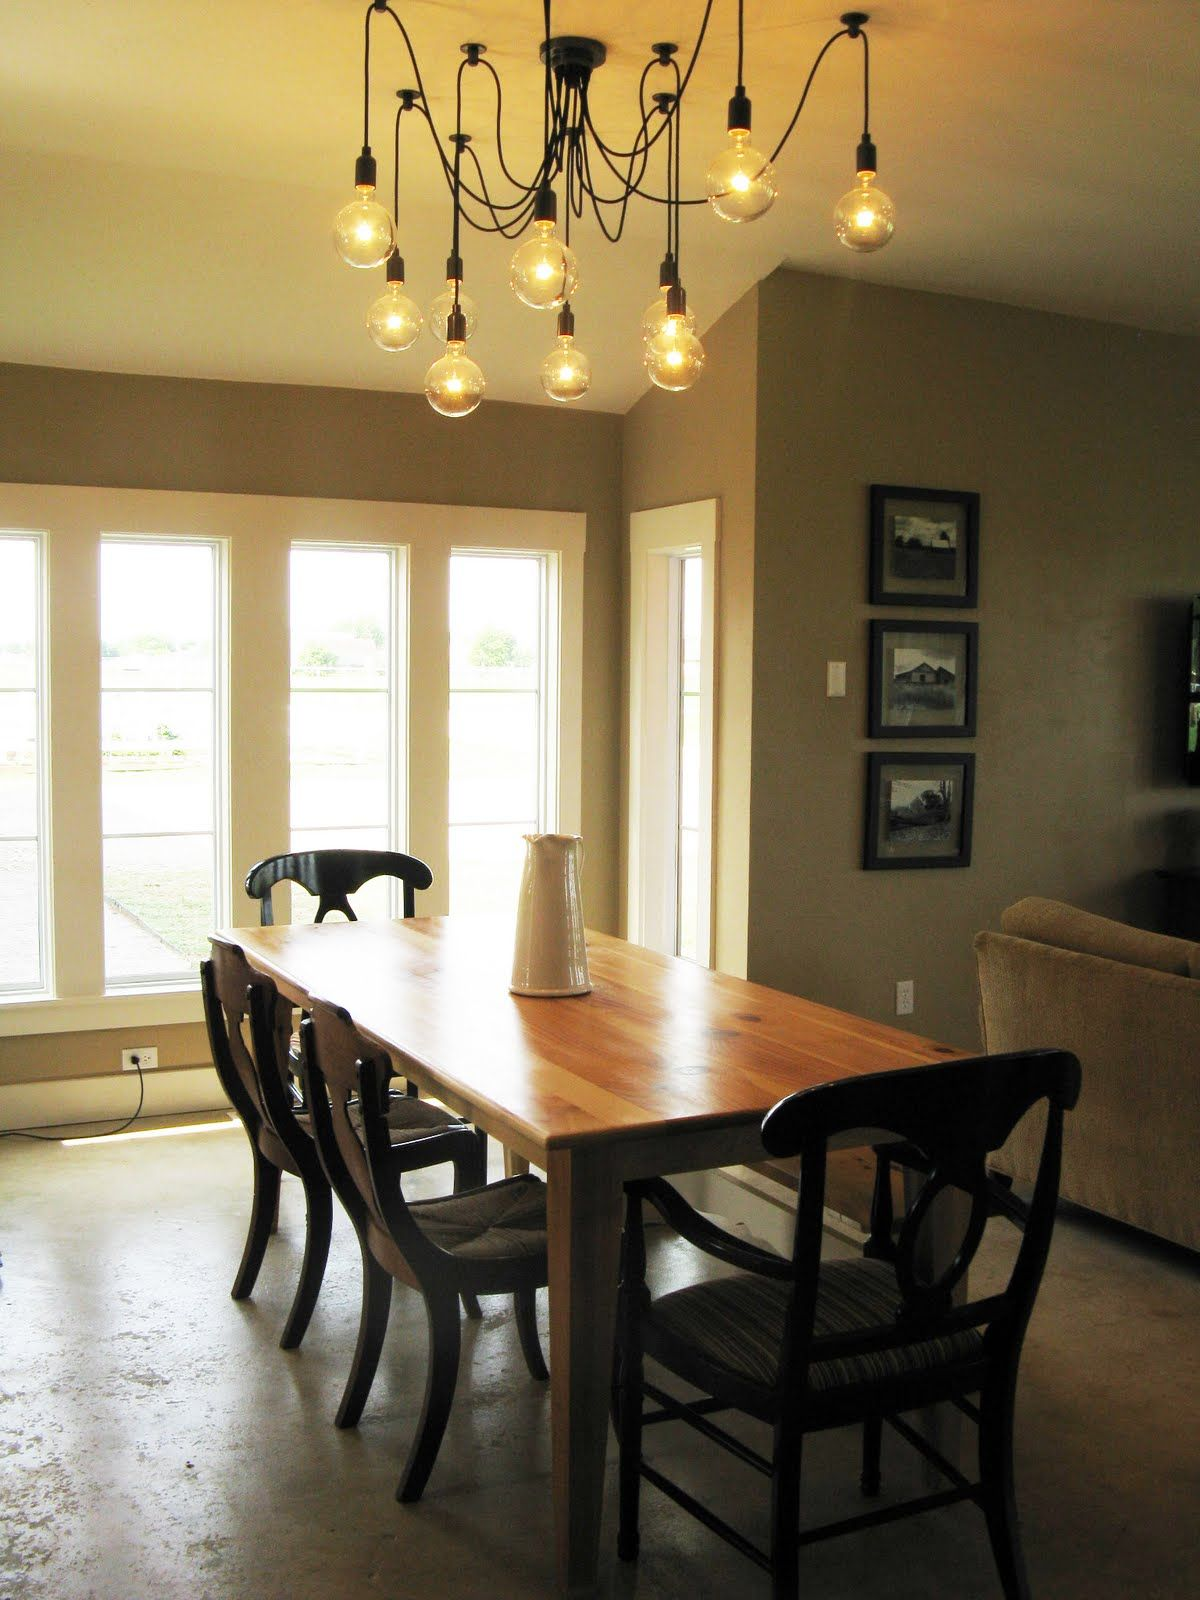 Dinning Room Table Light Fixture